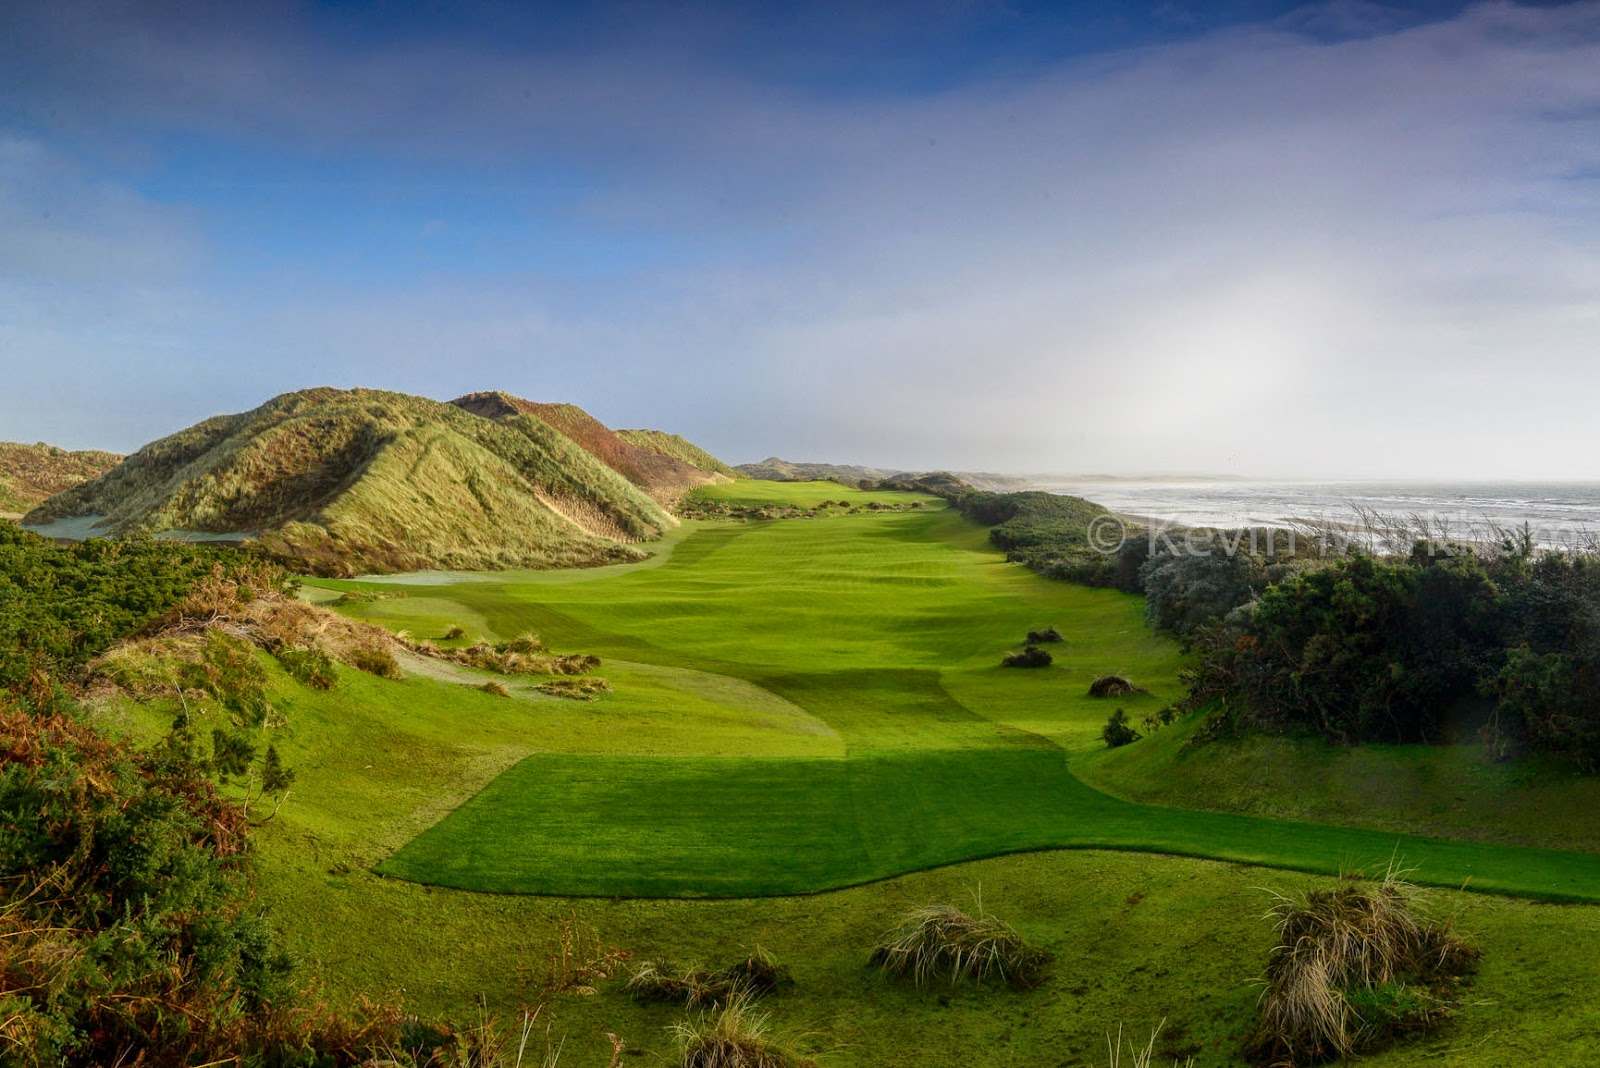 hooked ireland 39 s golf courses royal county down 39 s new holes ForRoyal County Down